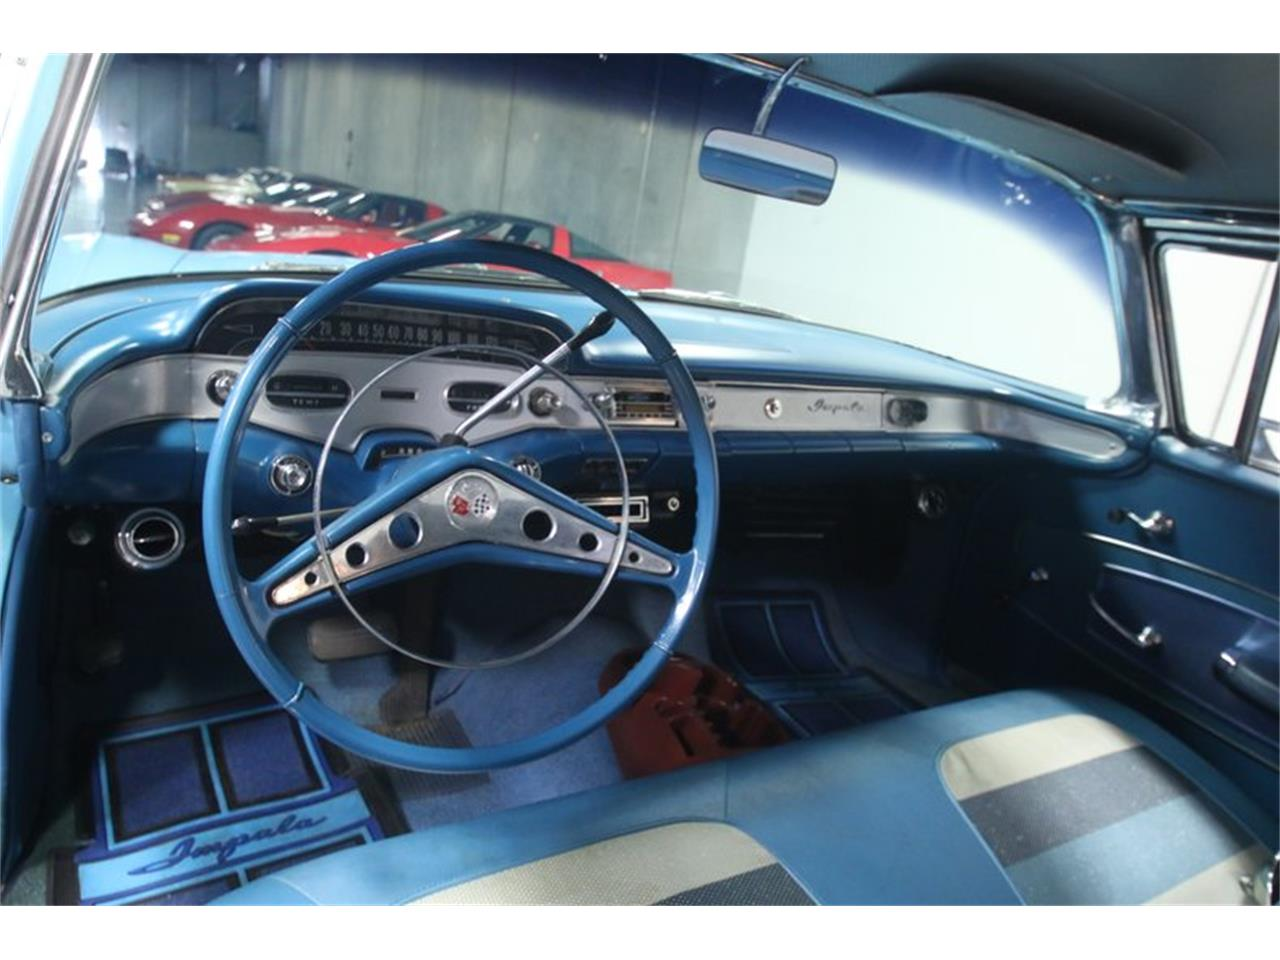 Large Picture of '58 Chevrolet Impala - $45,995.00 Offered by Streetside Classics - Atlanta - N1VE